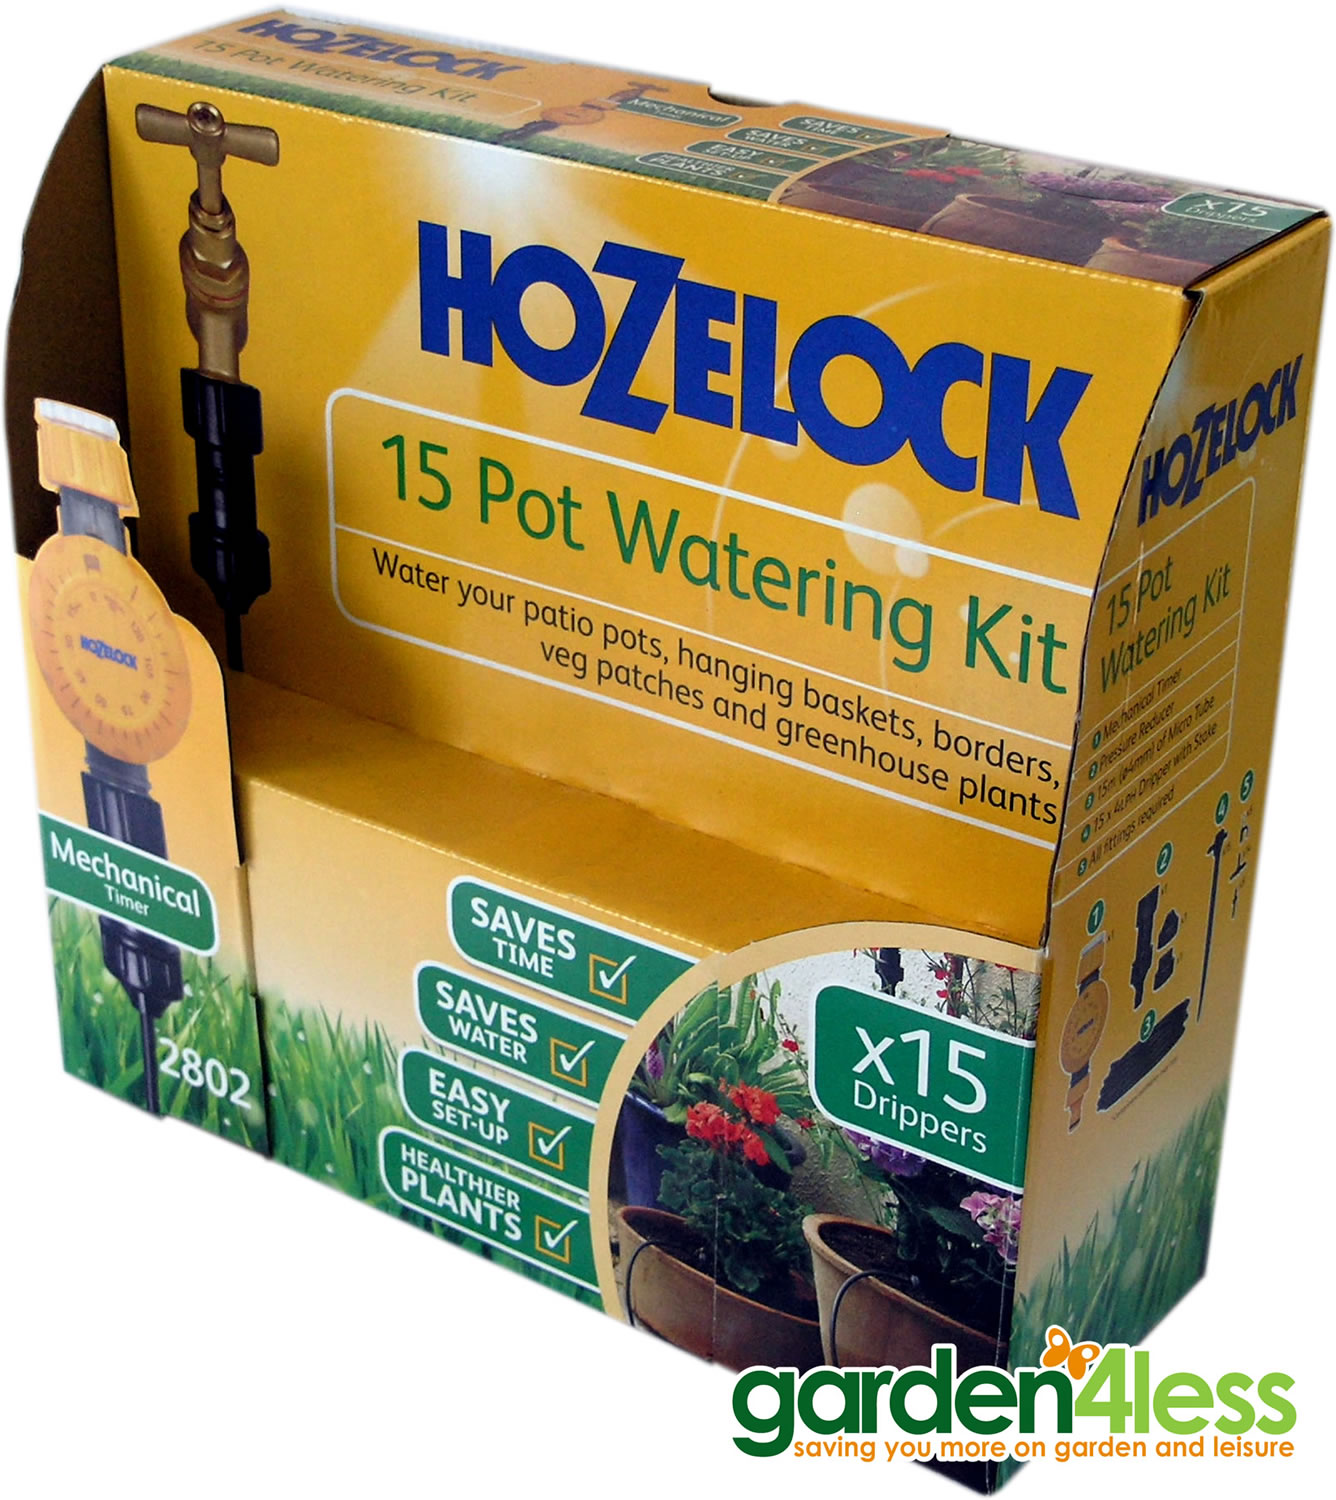 Extra image of Hozelock 15 Pot Watering Kit with Mechanical Timer